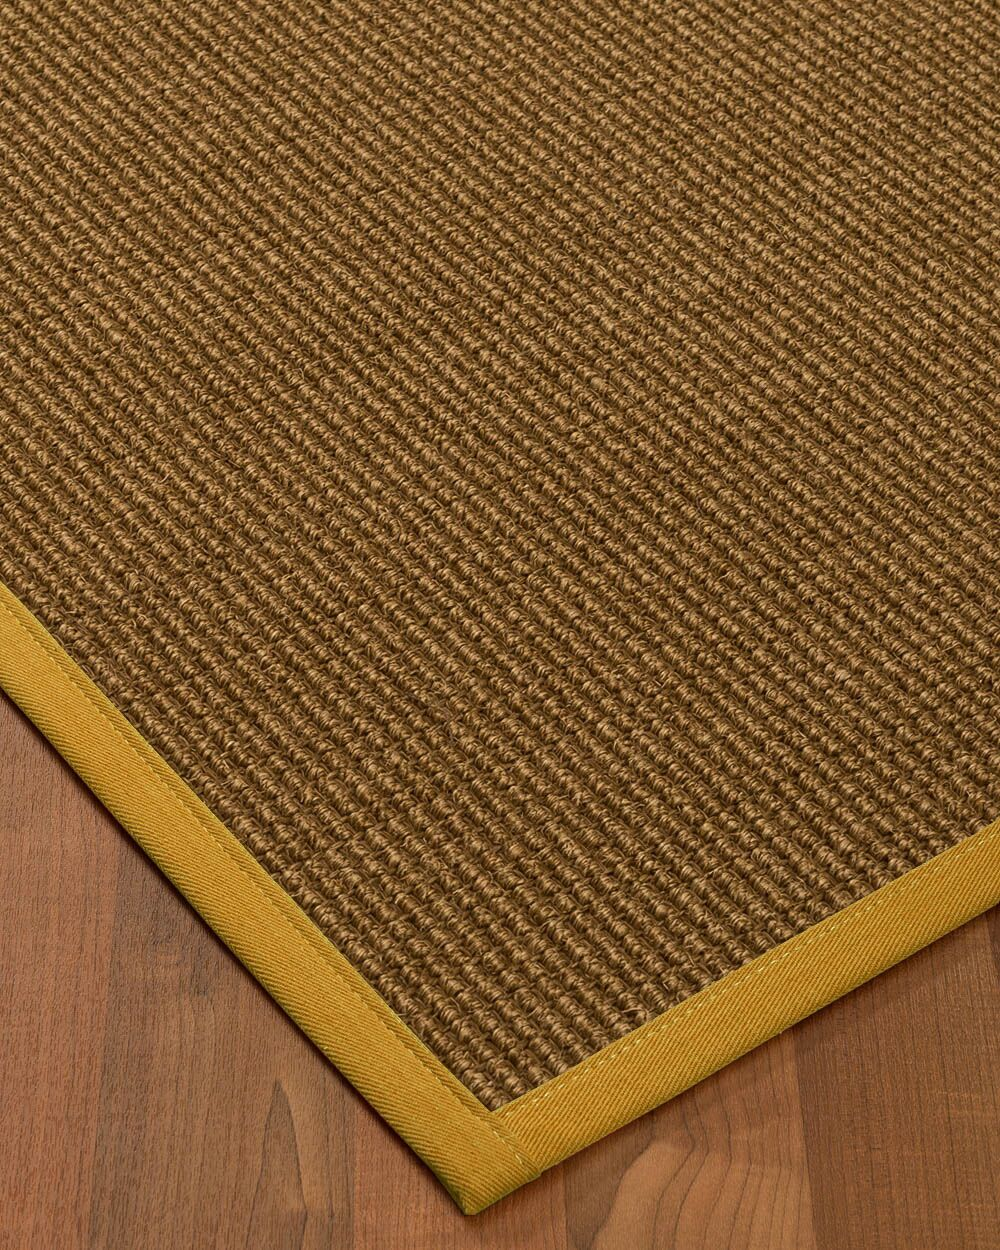 Kimbolton Hand-Woven Brown Area Rug Rug Size: Rectangle 6' x 9'